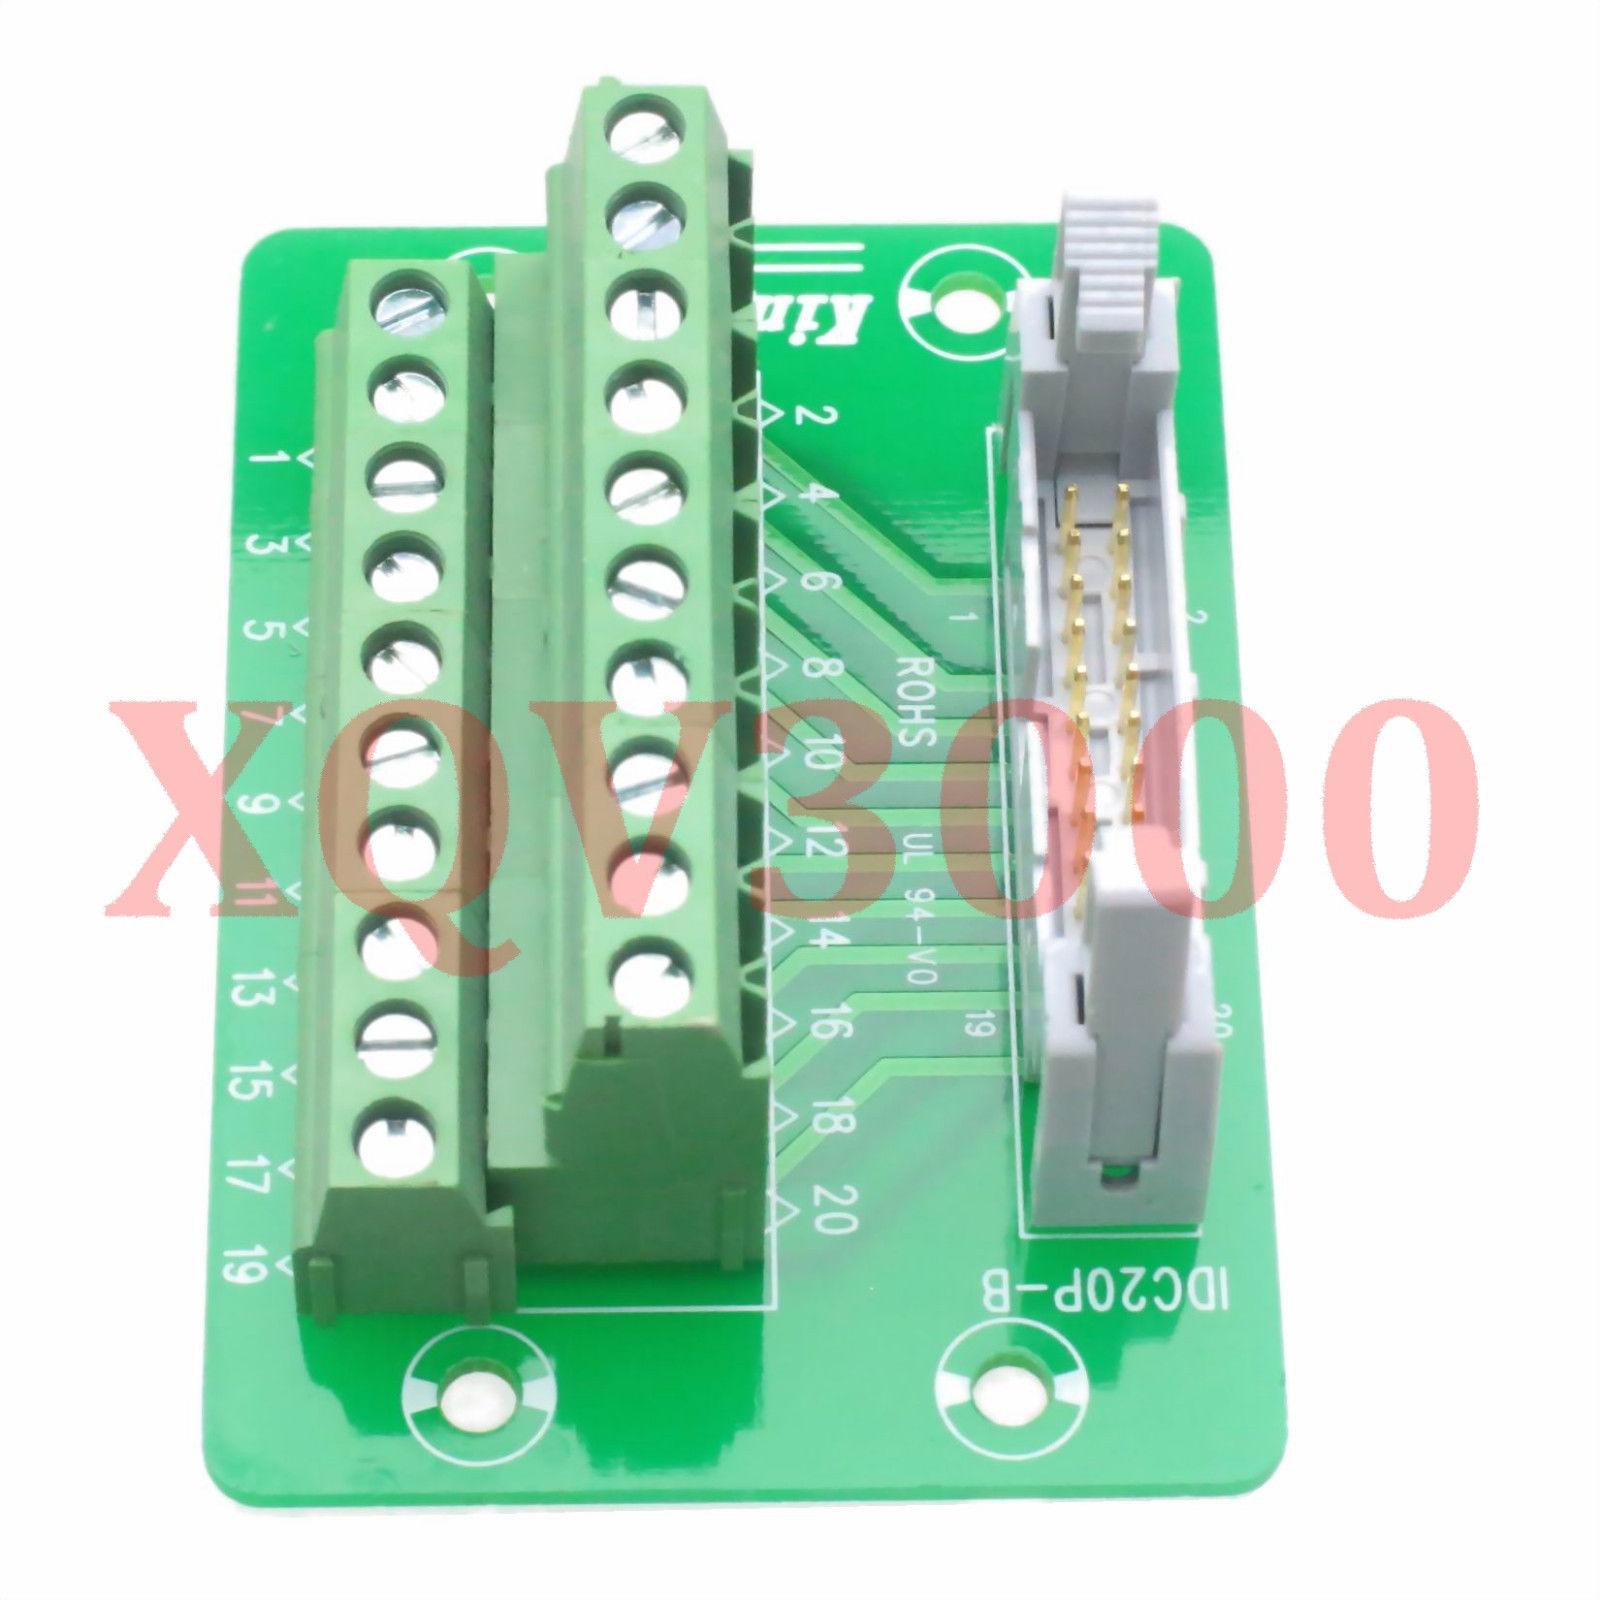 132 Connector Idc20 Idc 20 Pin Rail Din Mount Terminal Breakout Circuit Board Mounting Bracket For Ebay 2 Row C45 35mm Electronics